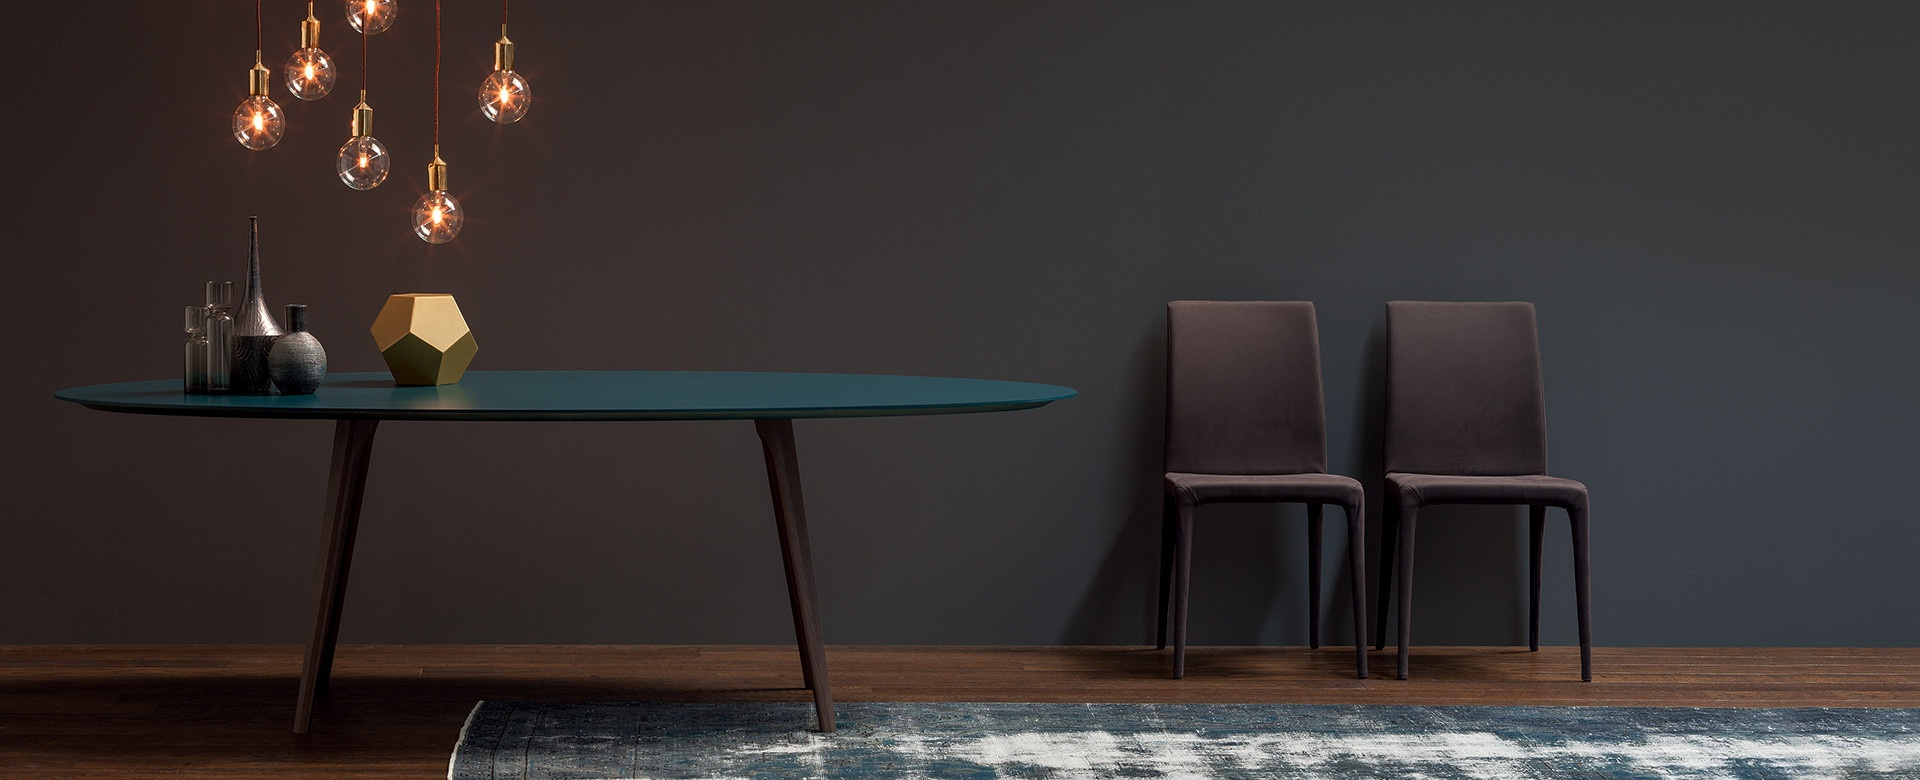 Wonderful image of Dining table natural wood Argos Novamobili Luxury furniture with #9C6E2F color and 1920x780 pixels